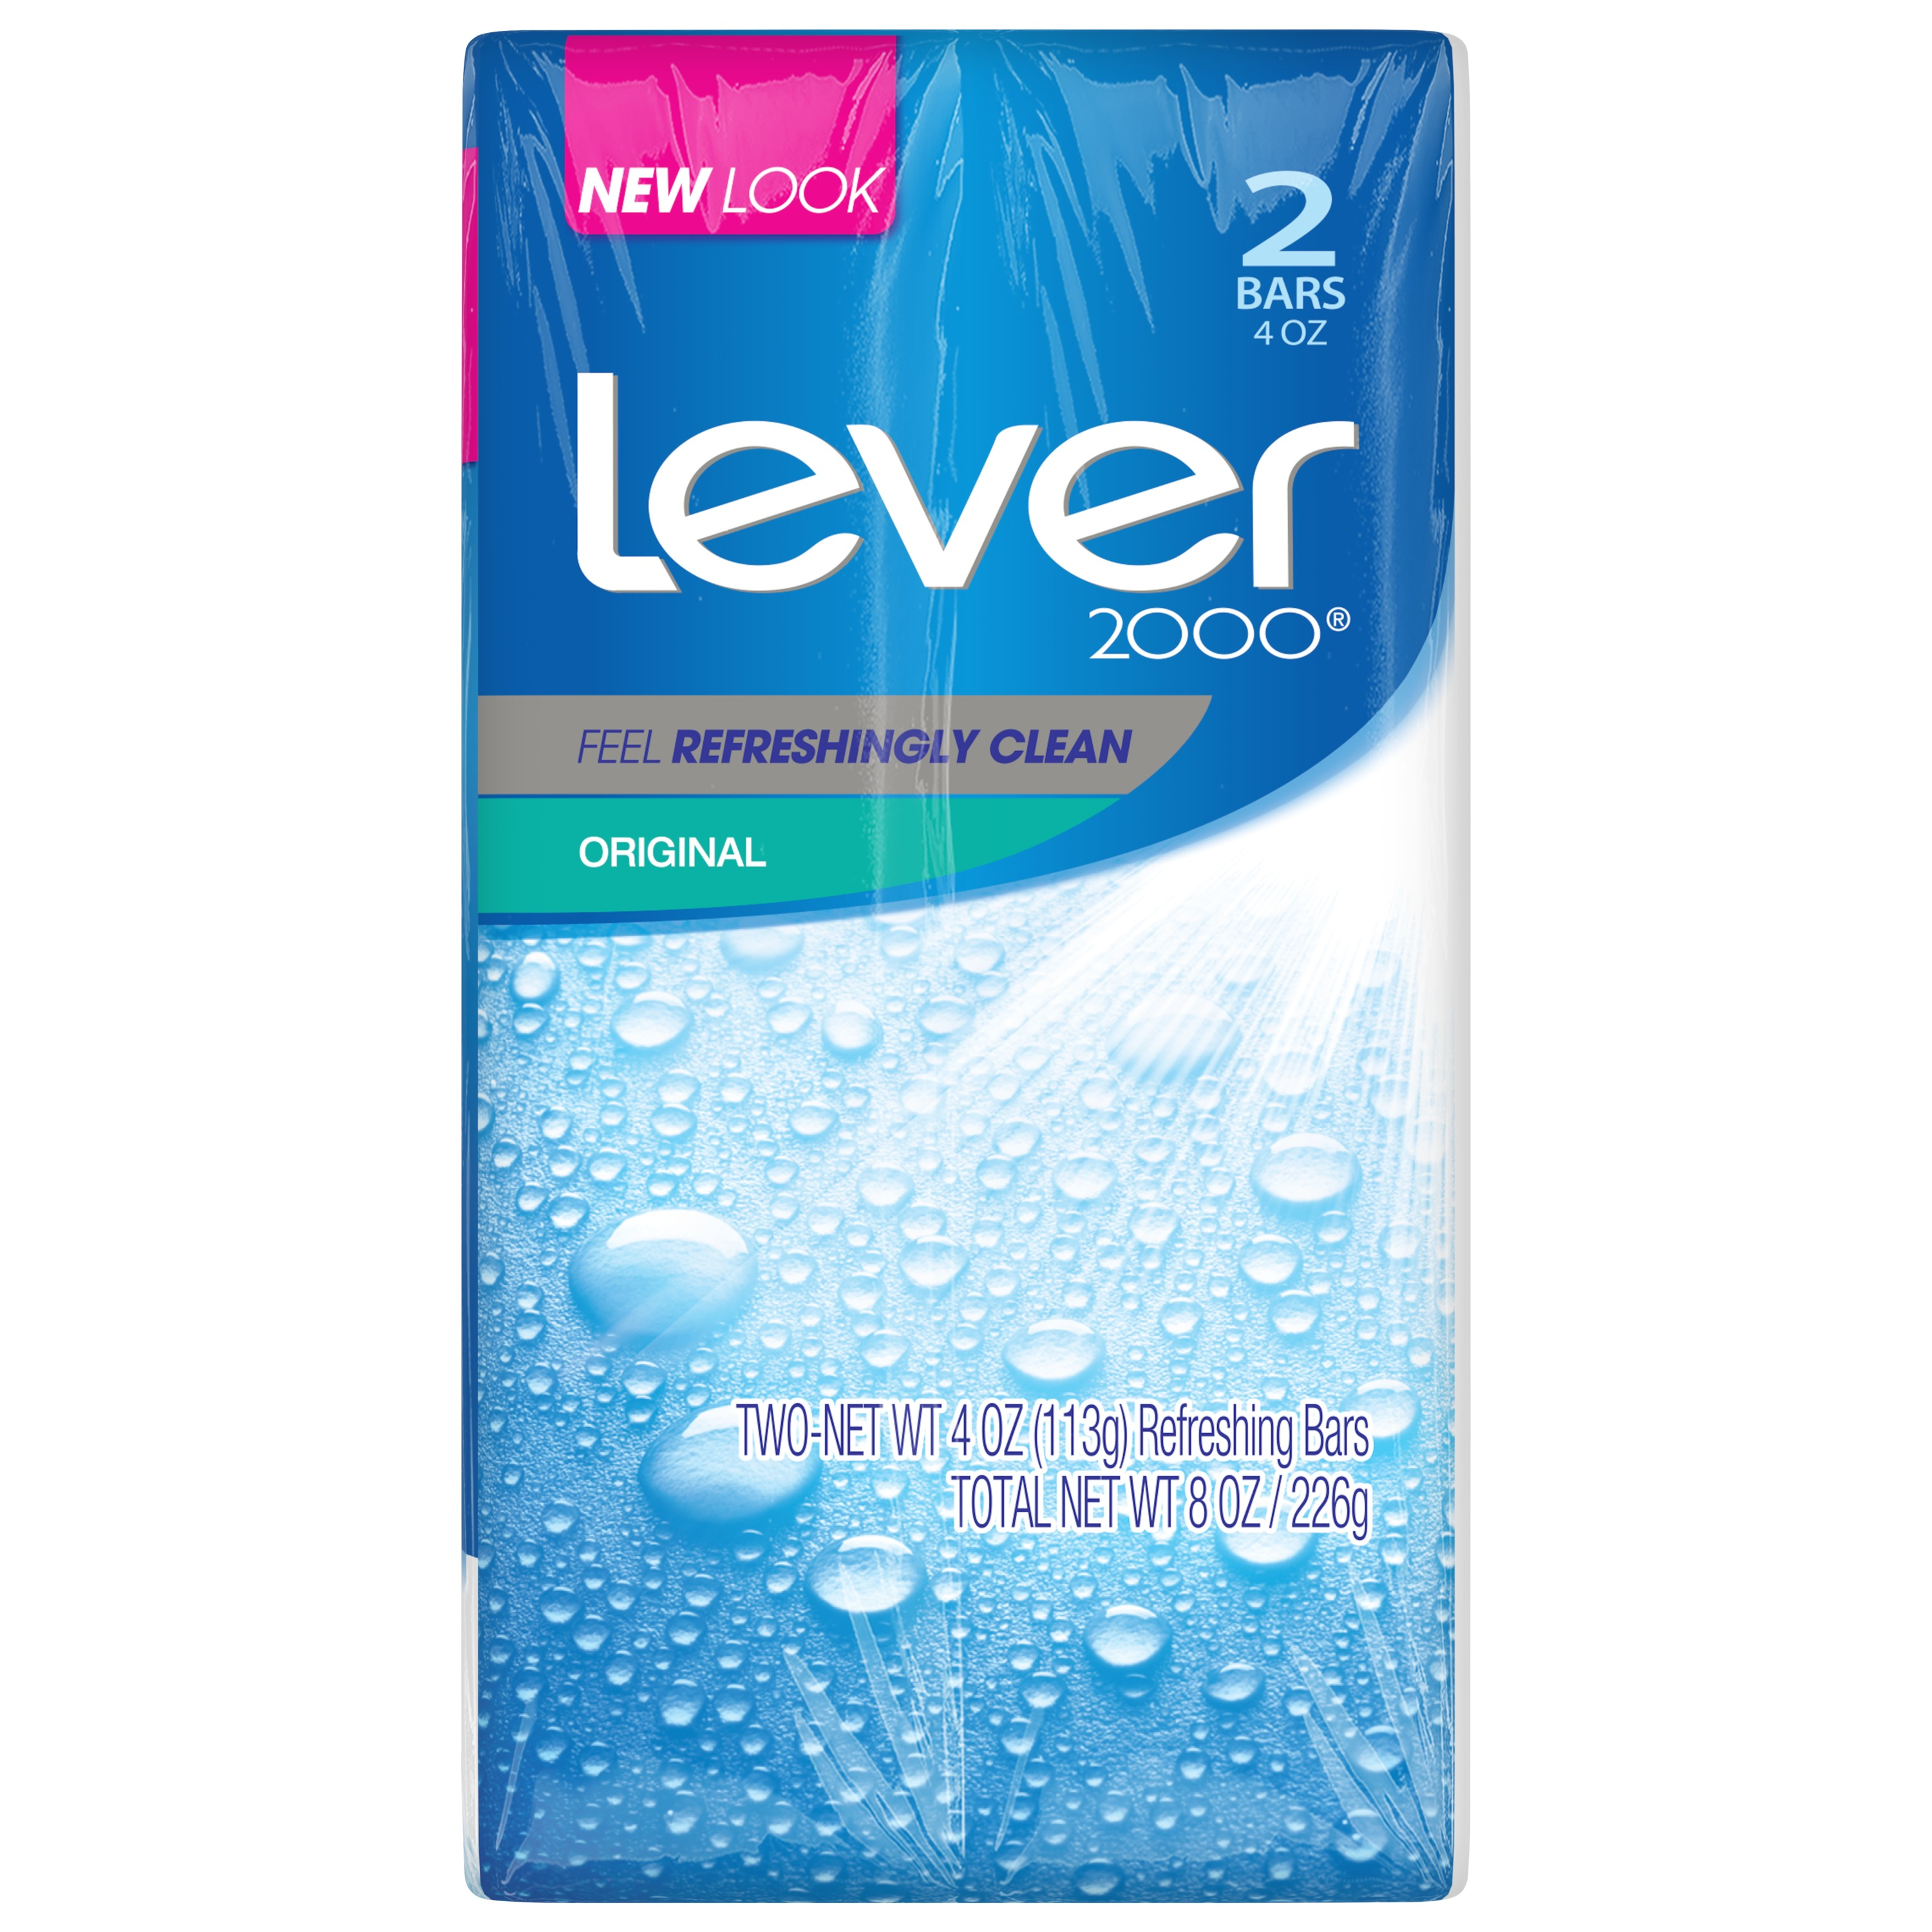 Lever 2000 Bar Soap Original 4 oz, 2 Bar